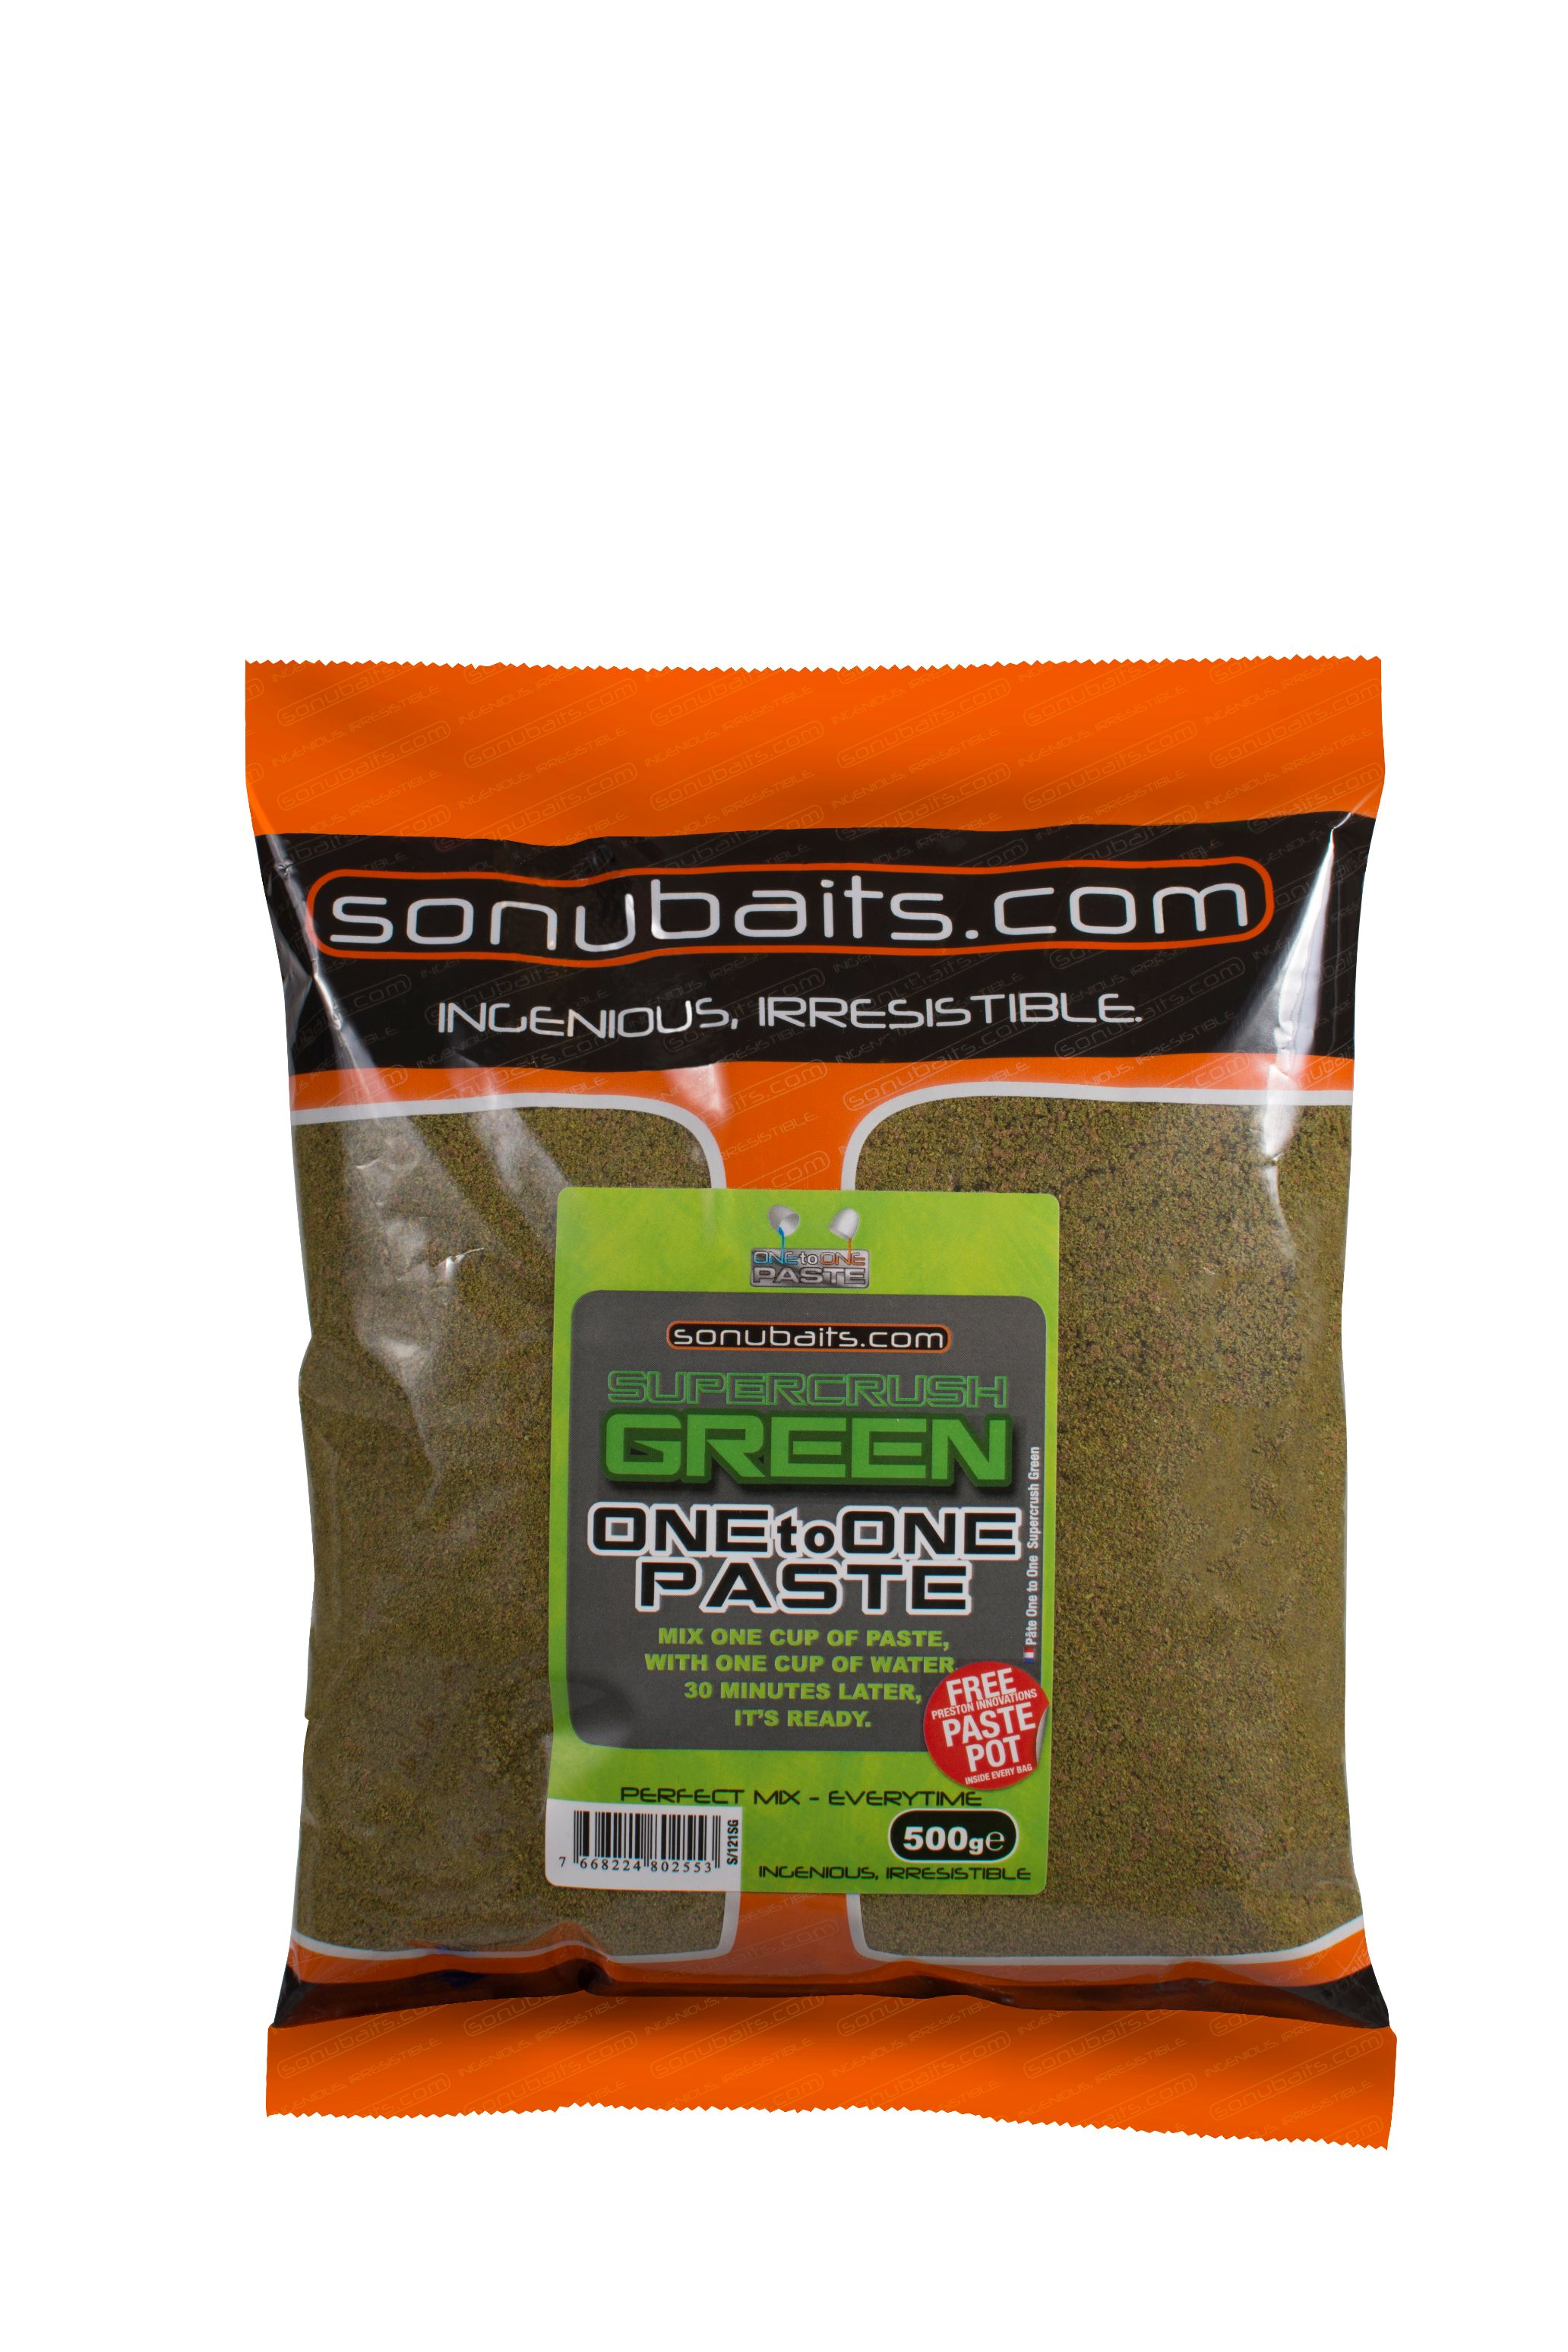 Pâte Sonubaits Green Supercrush One to One - 500gr